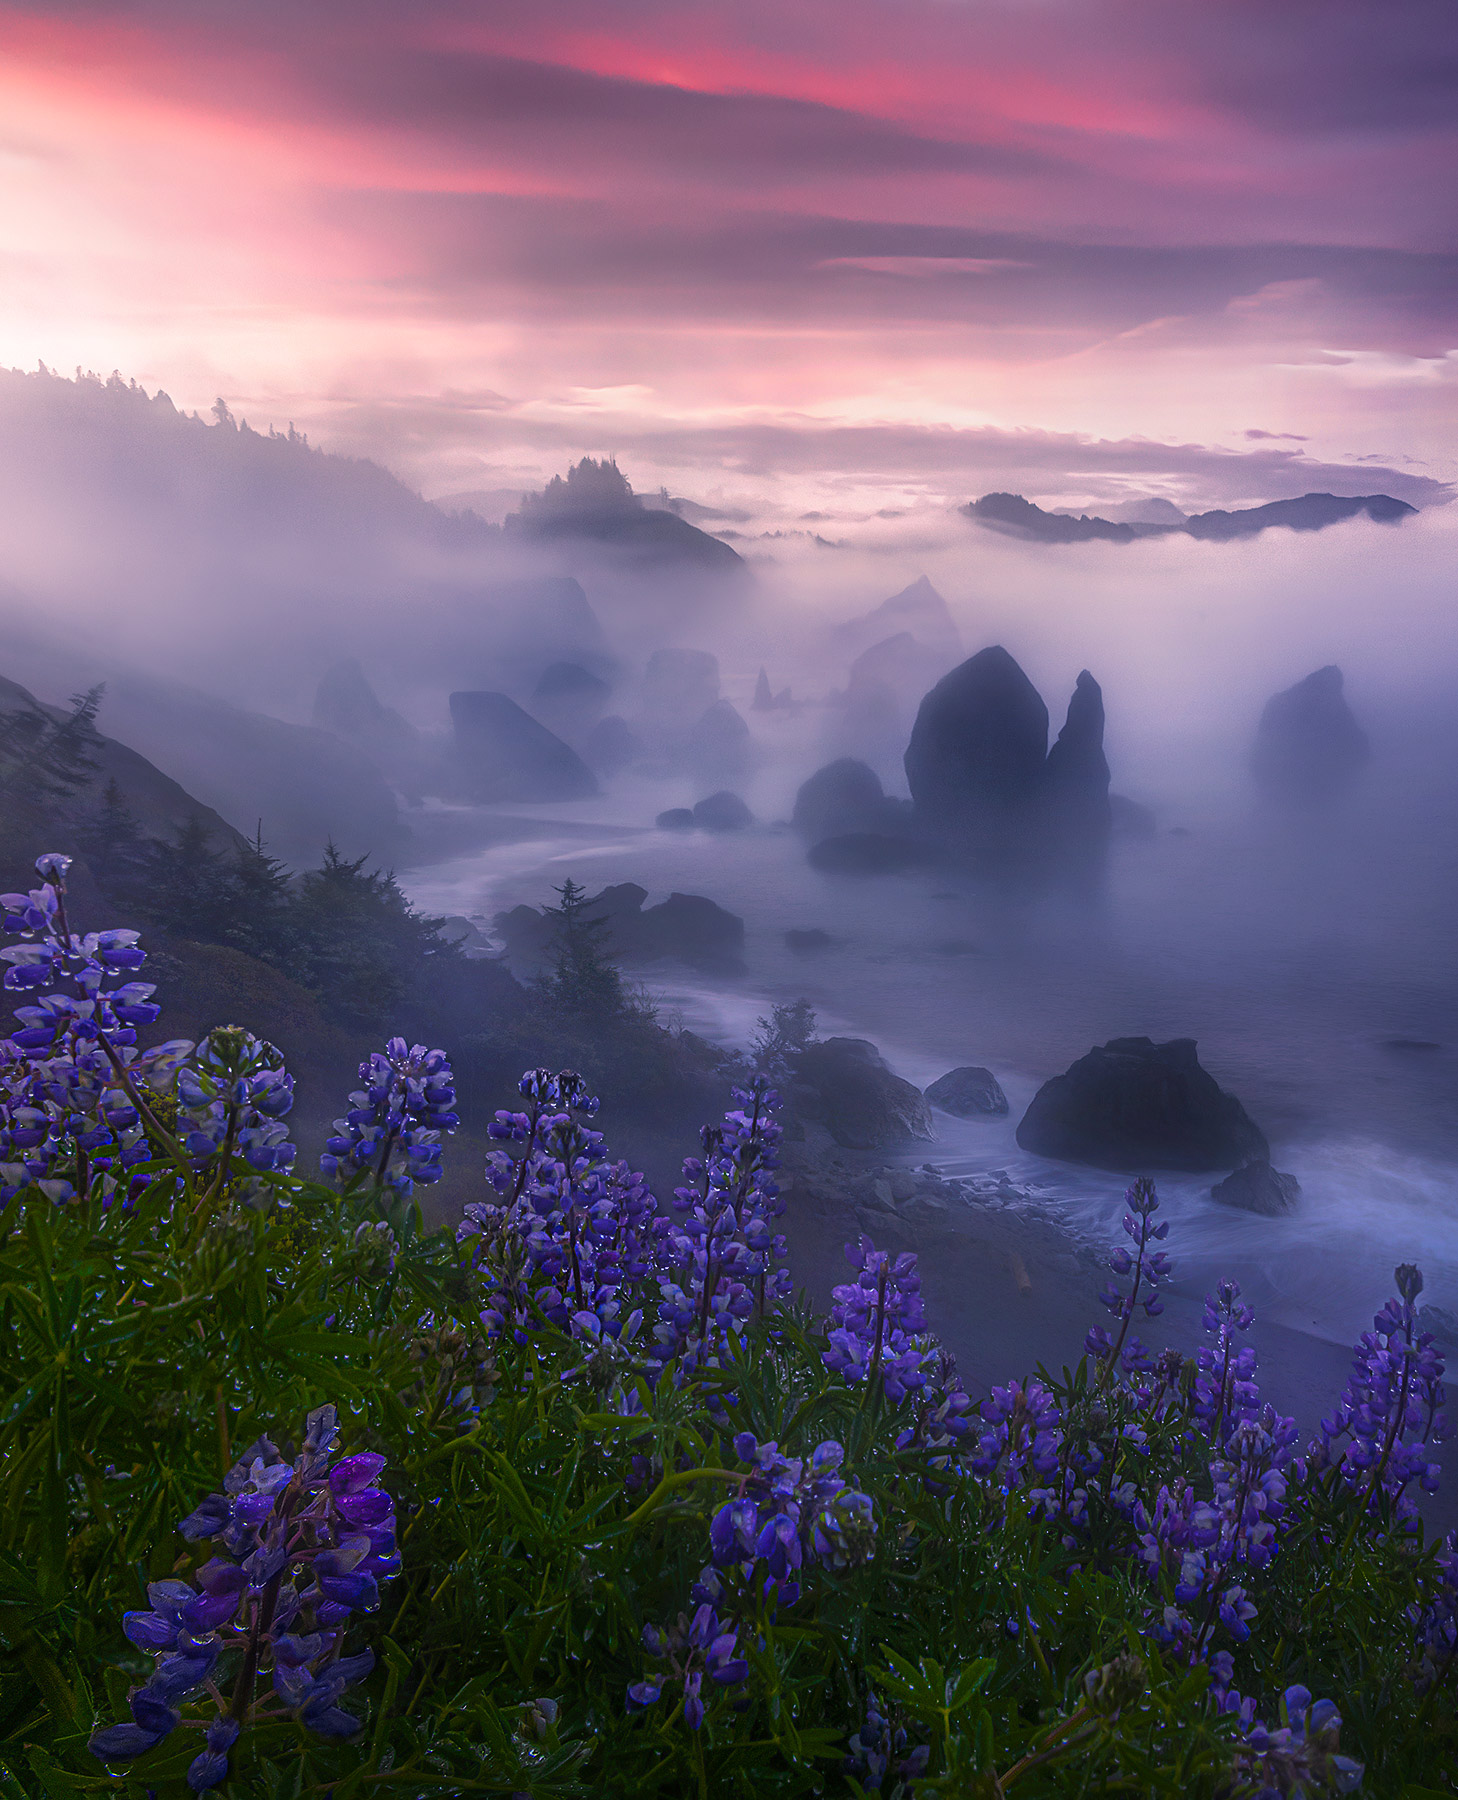 Spring flowers on the Oregon coast are a rare sight, but one that is widespread in certain locations about 1 out of every 3 years...